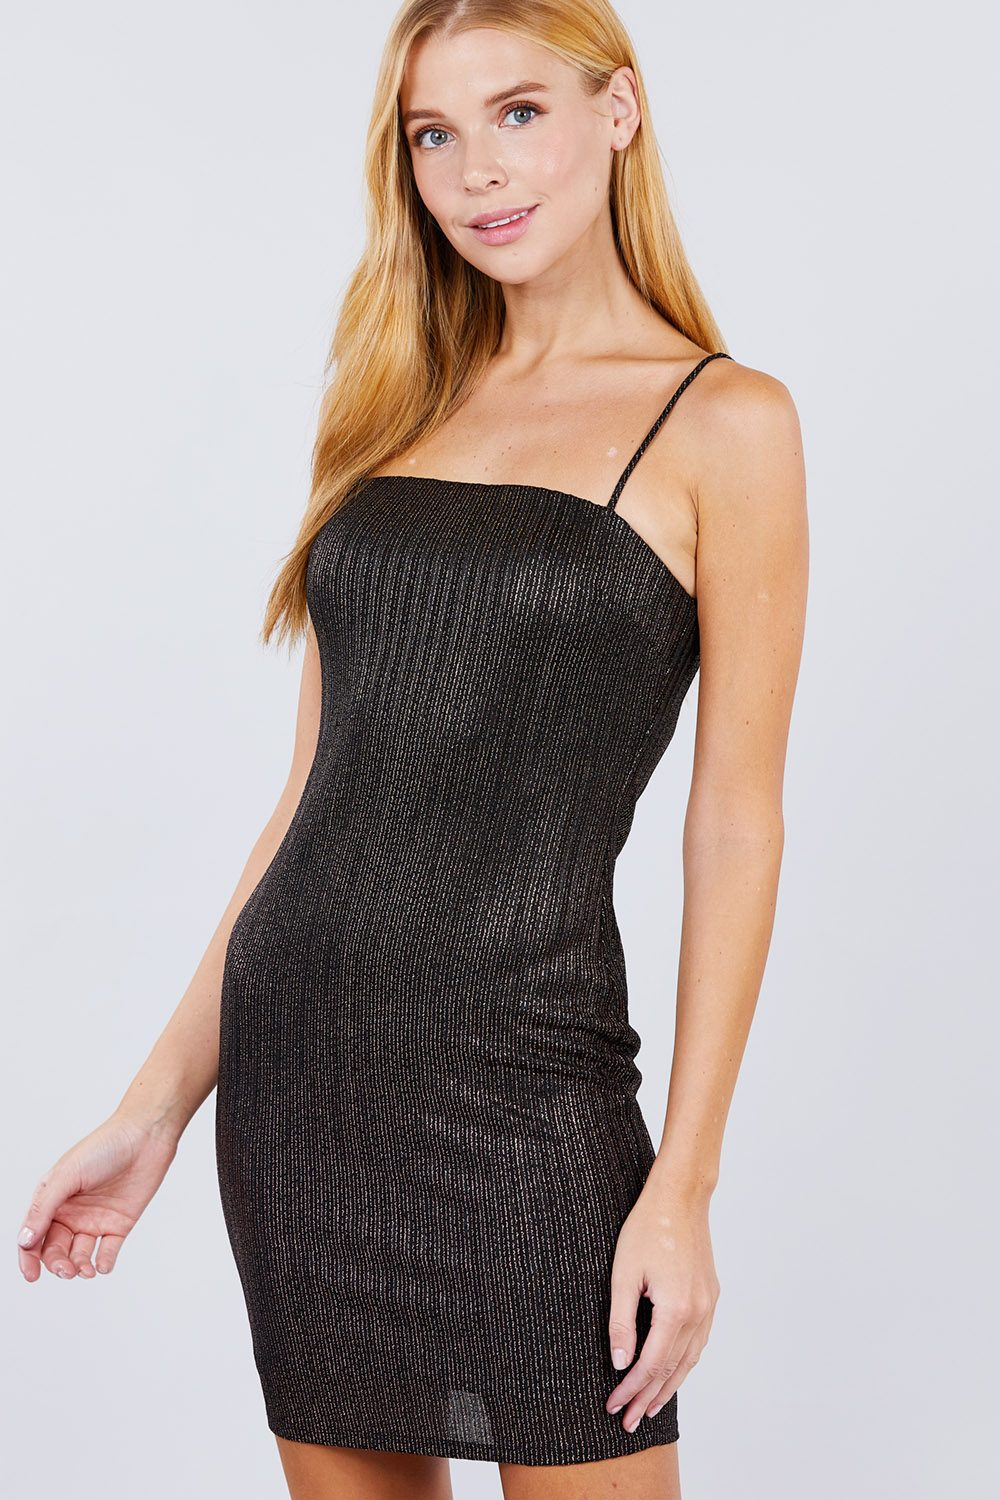 Black Dress - Cami Sparkle Mini Bodycon Dress - Local Scenes